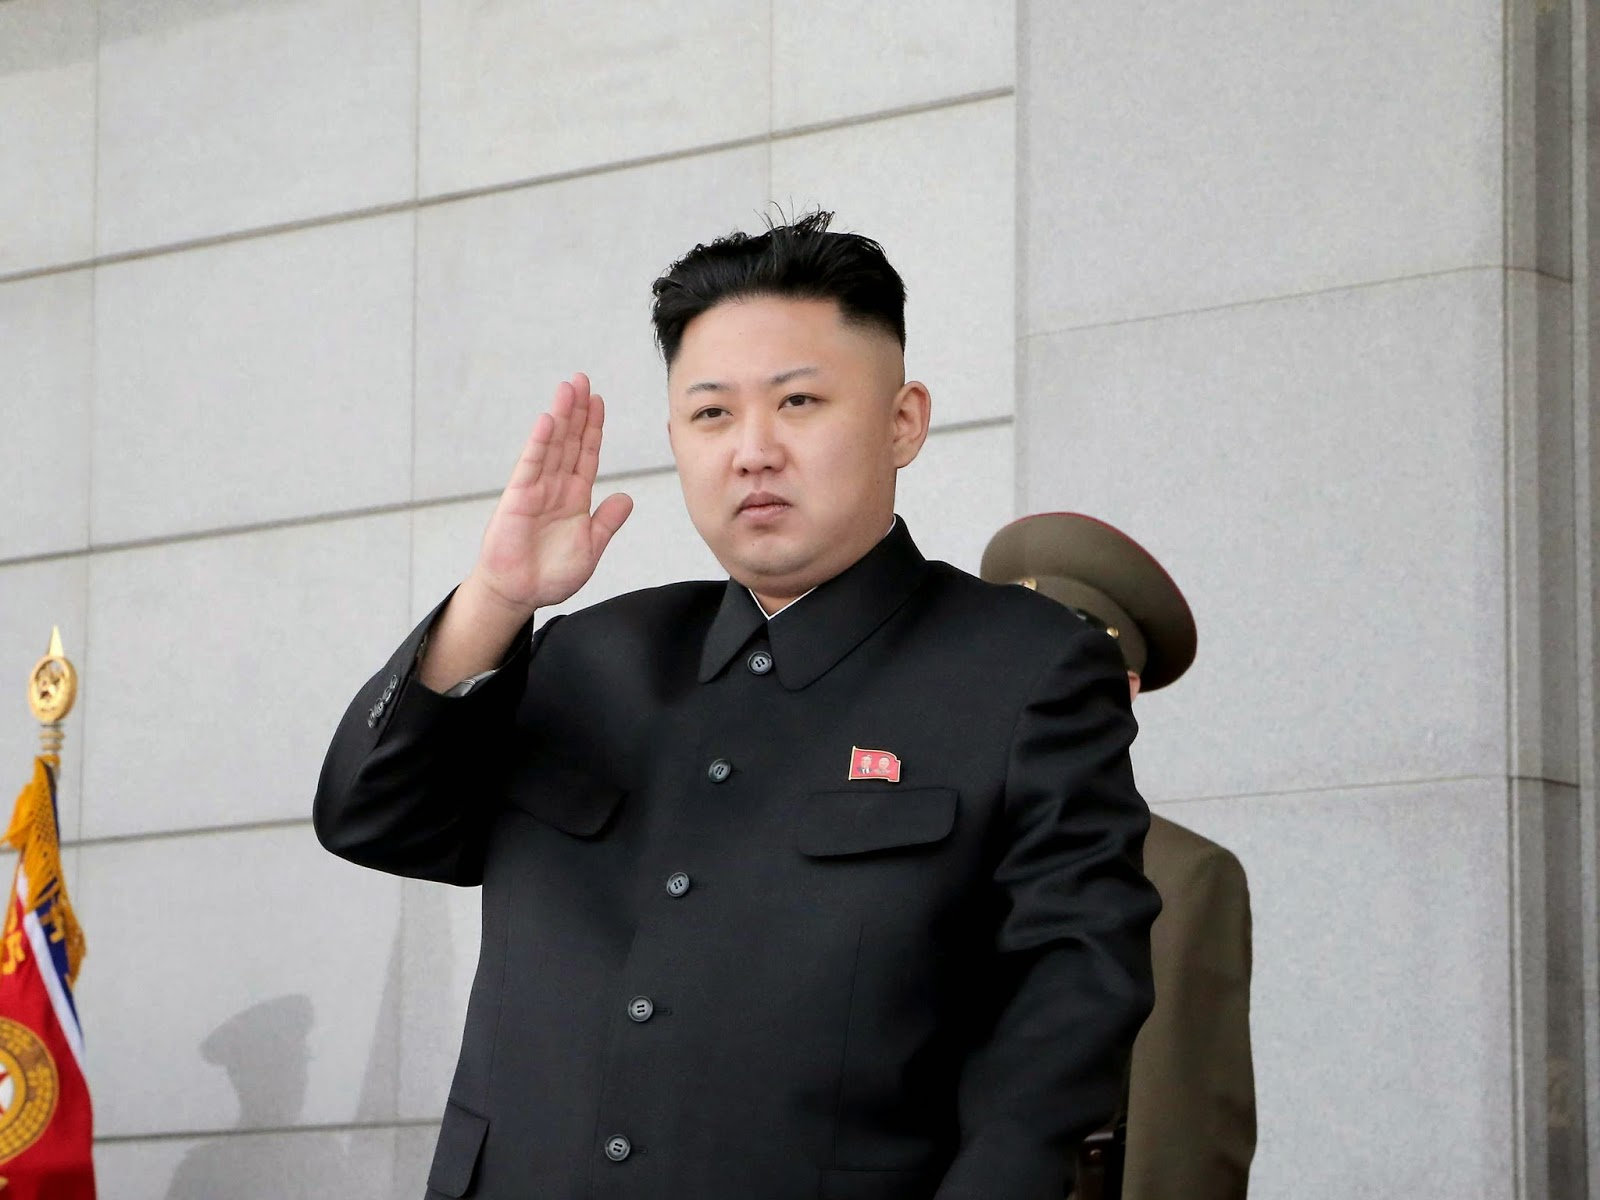 the story about kim jong un having his uncle eaten by 120 wild dogs may have started with a satirical tweet